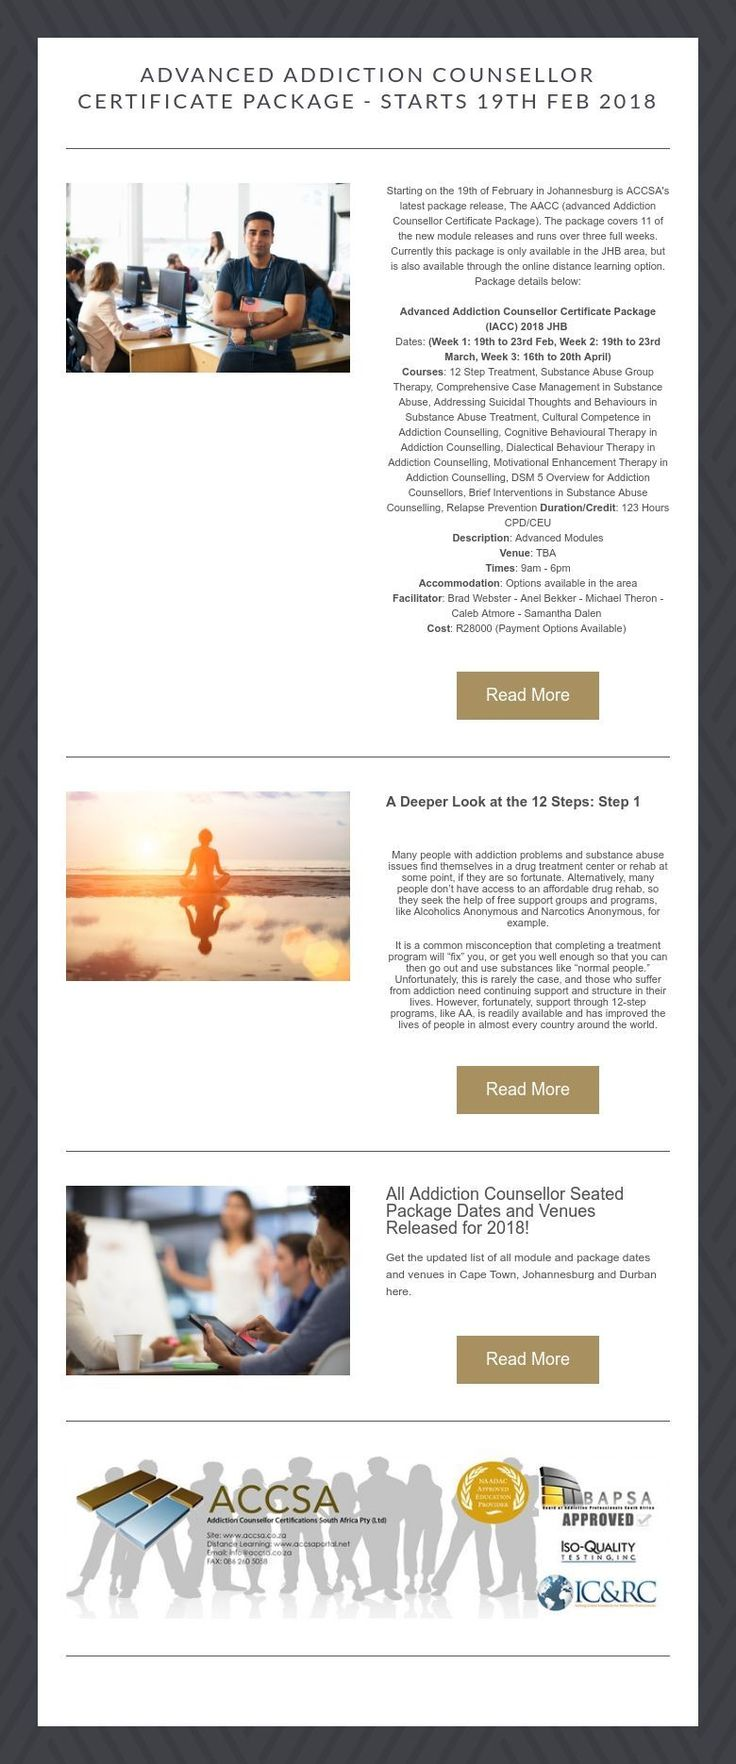 Advanced Addiction Counsellor Certificate Package - Starts 19th Feb 2018